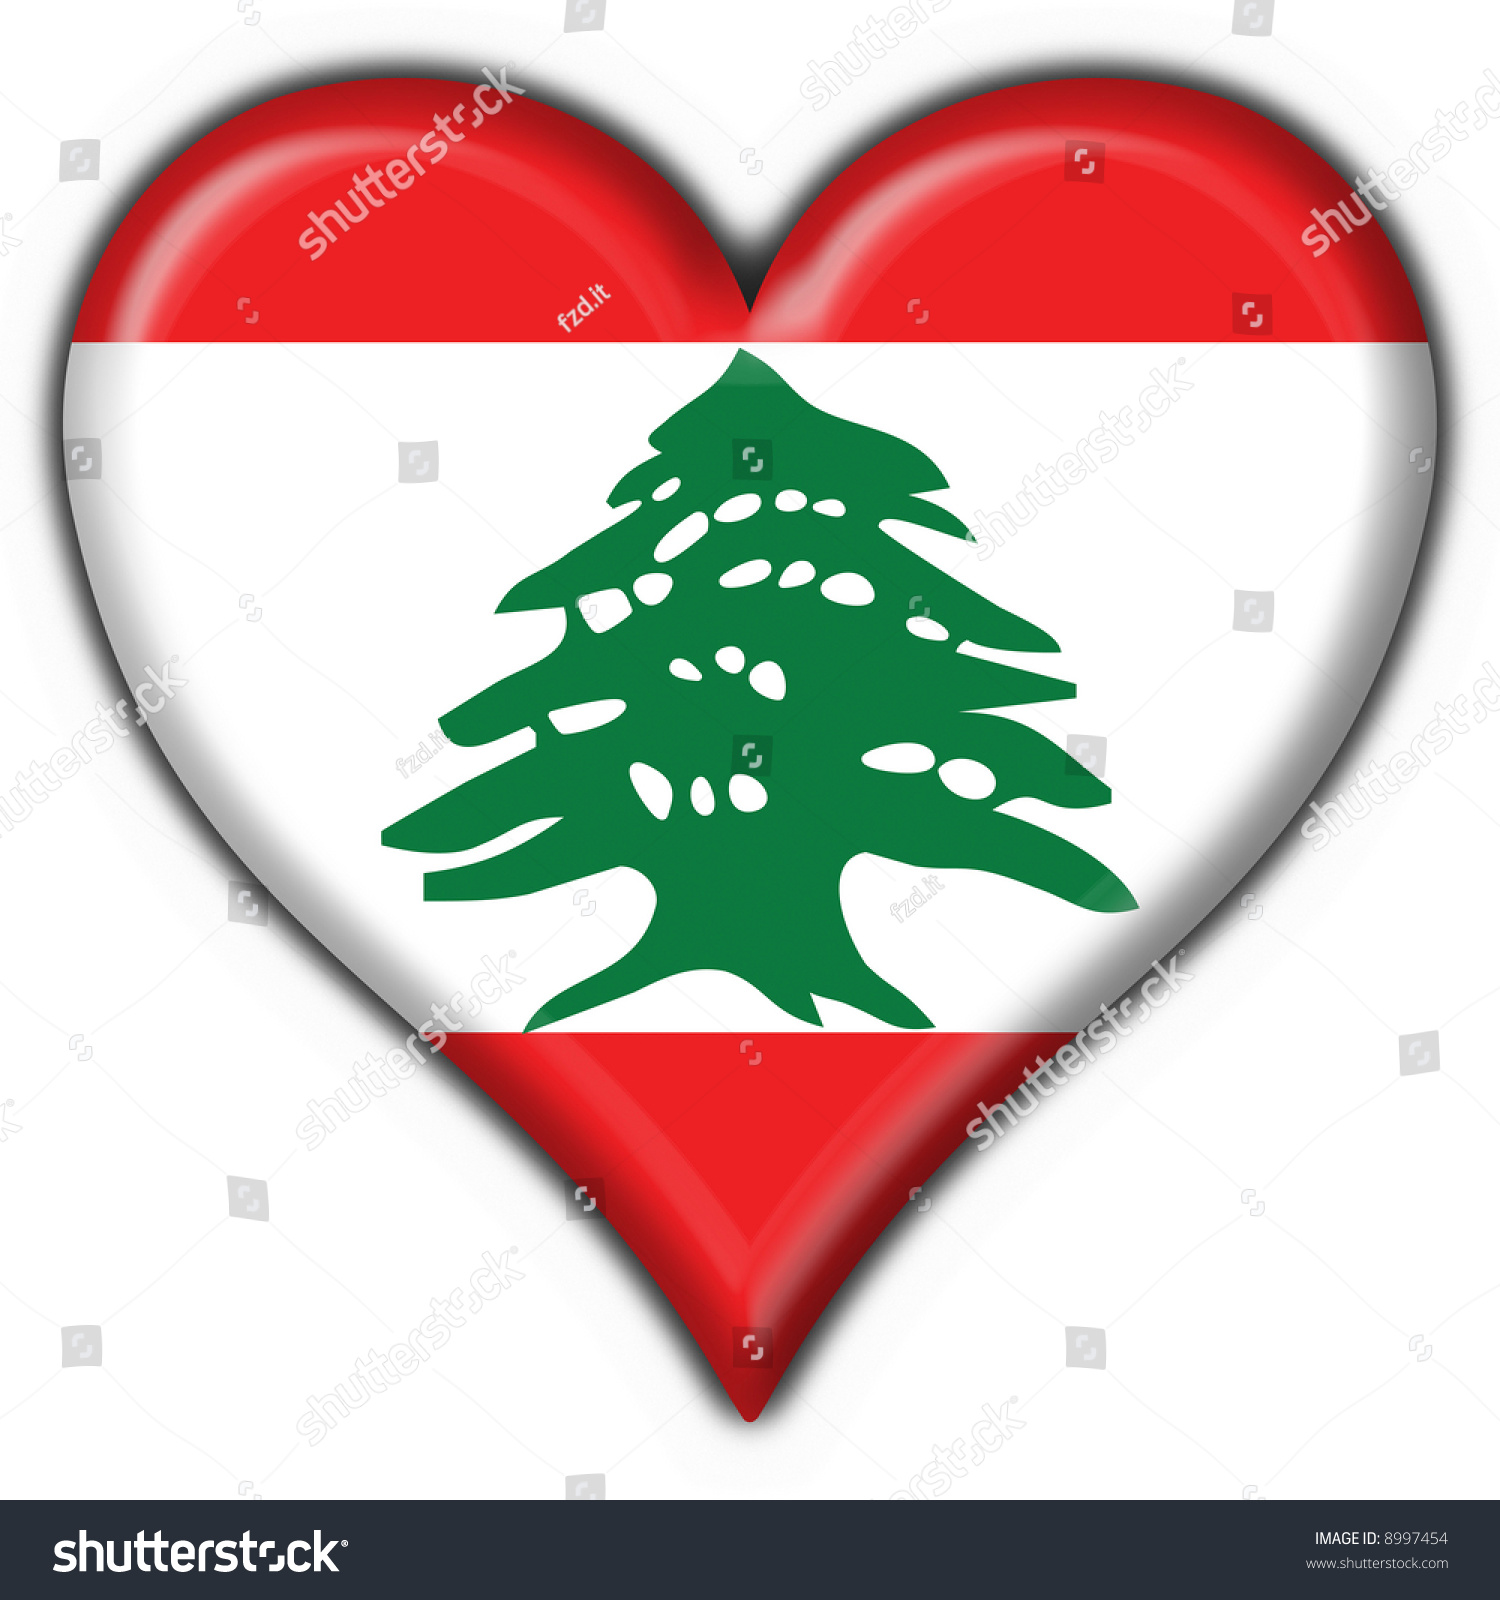 lebanon button flag heart shape stock illustration 8997454